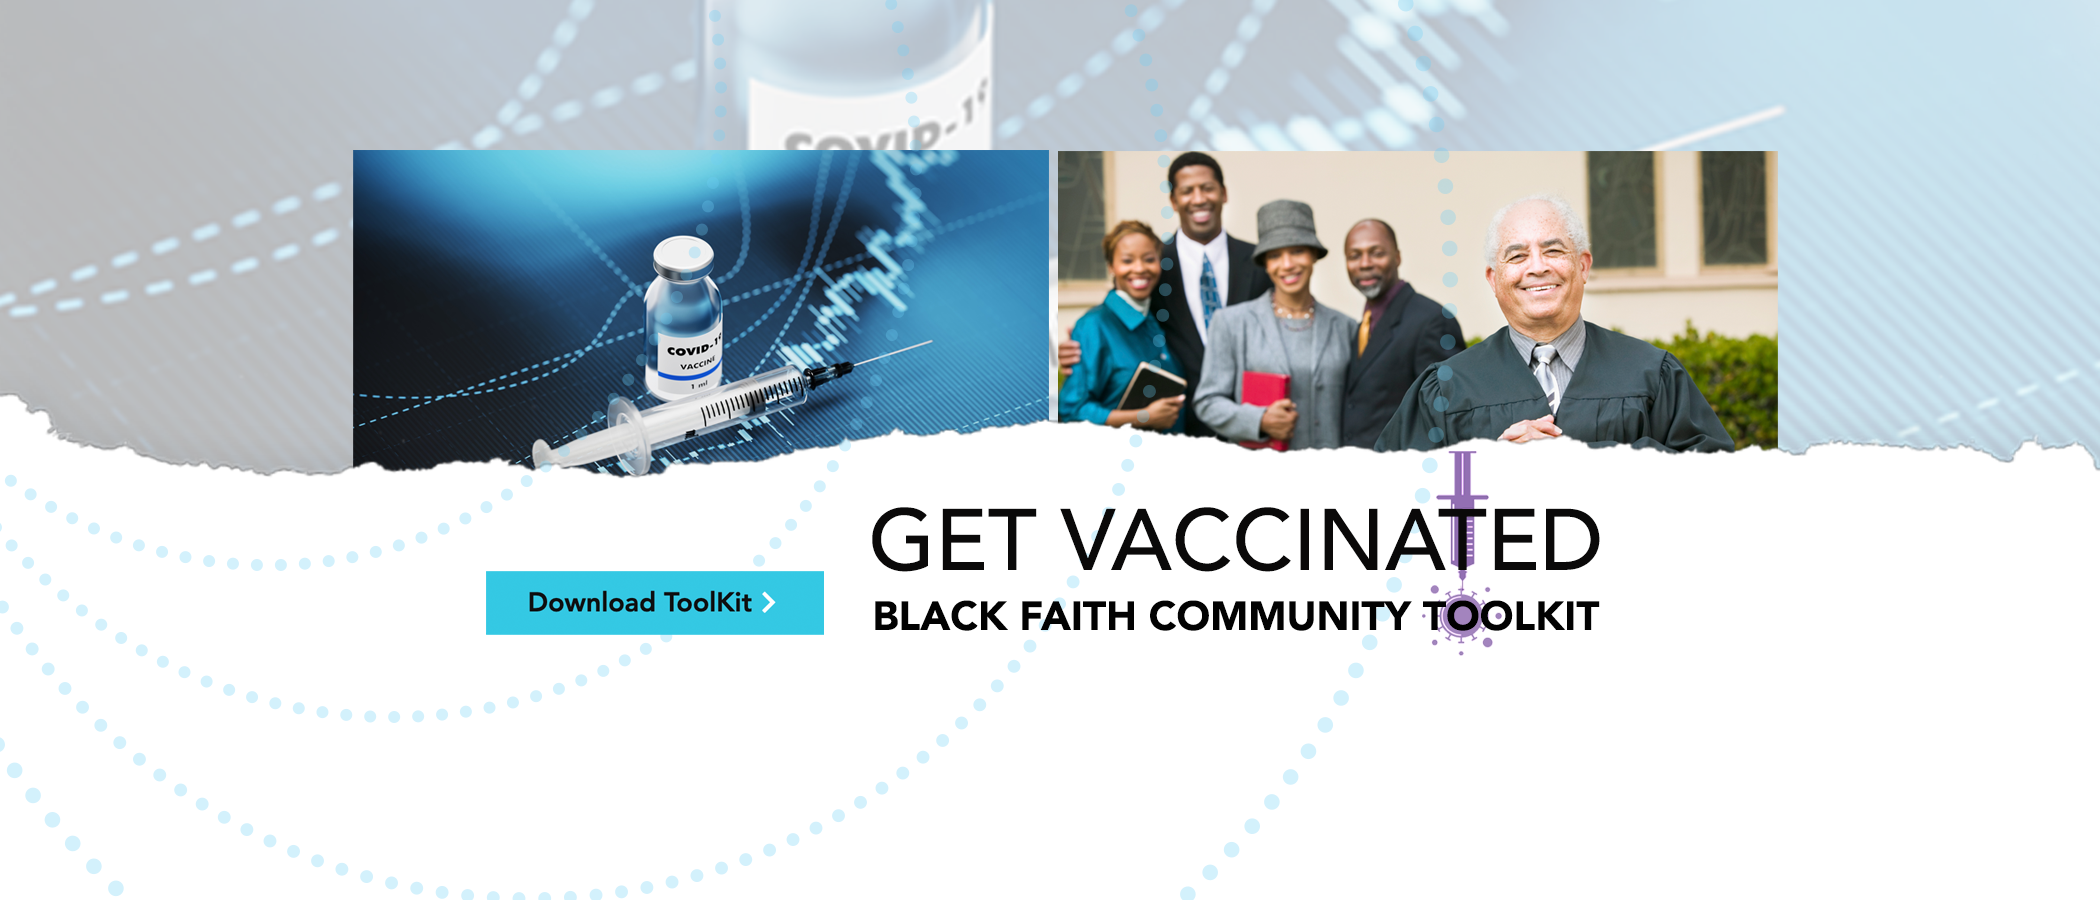 VaccineWebsite.Header copy